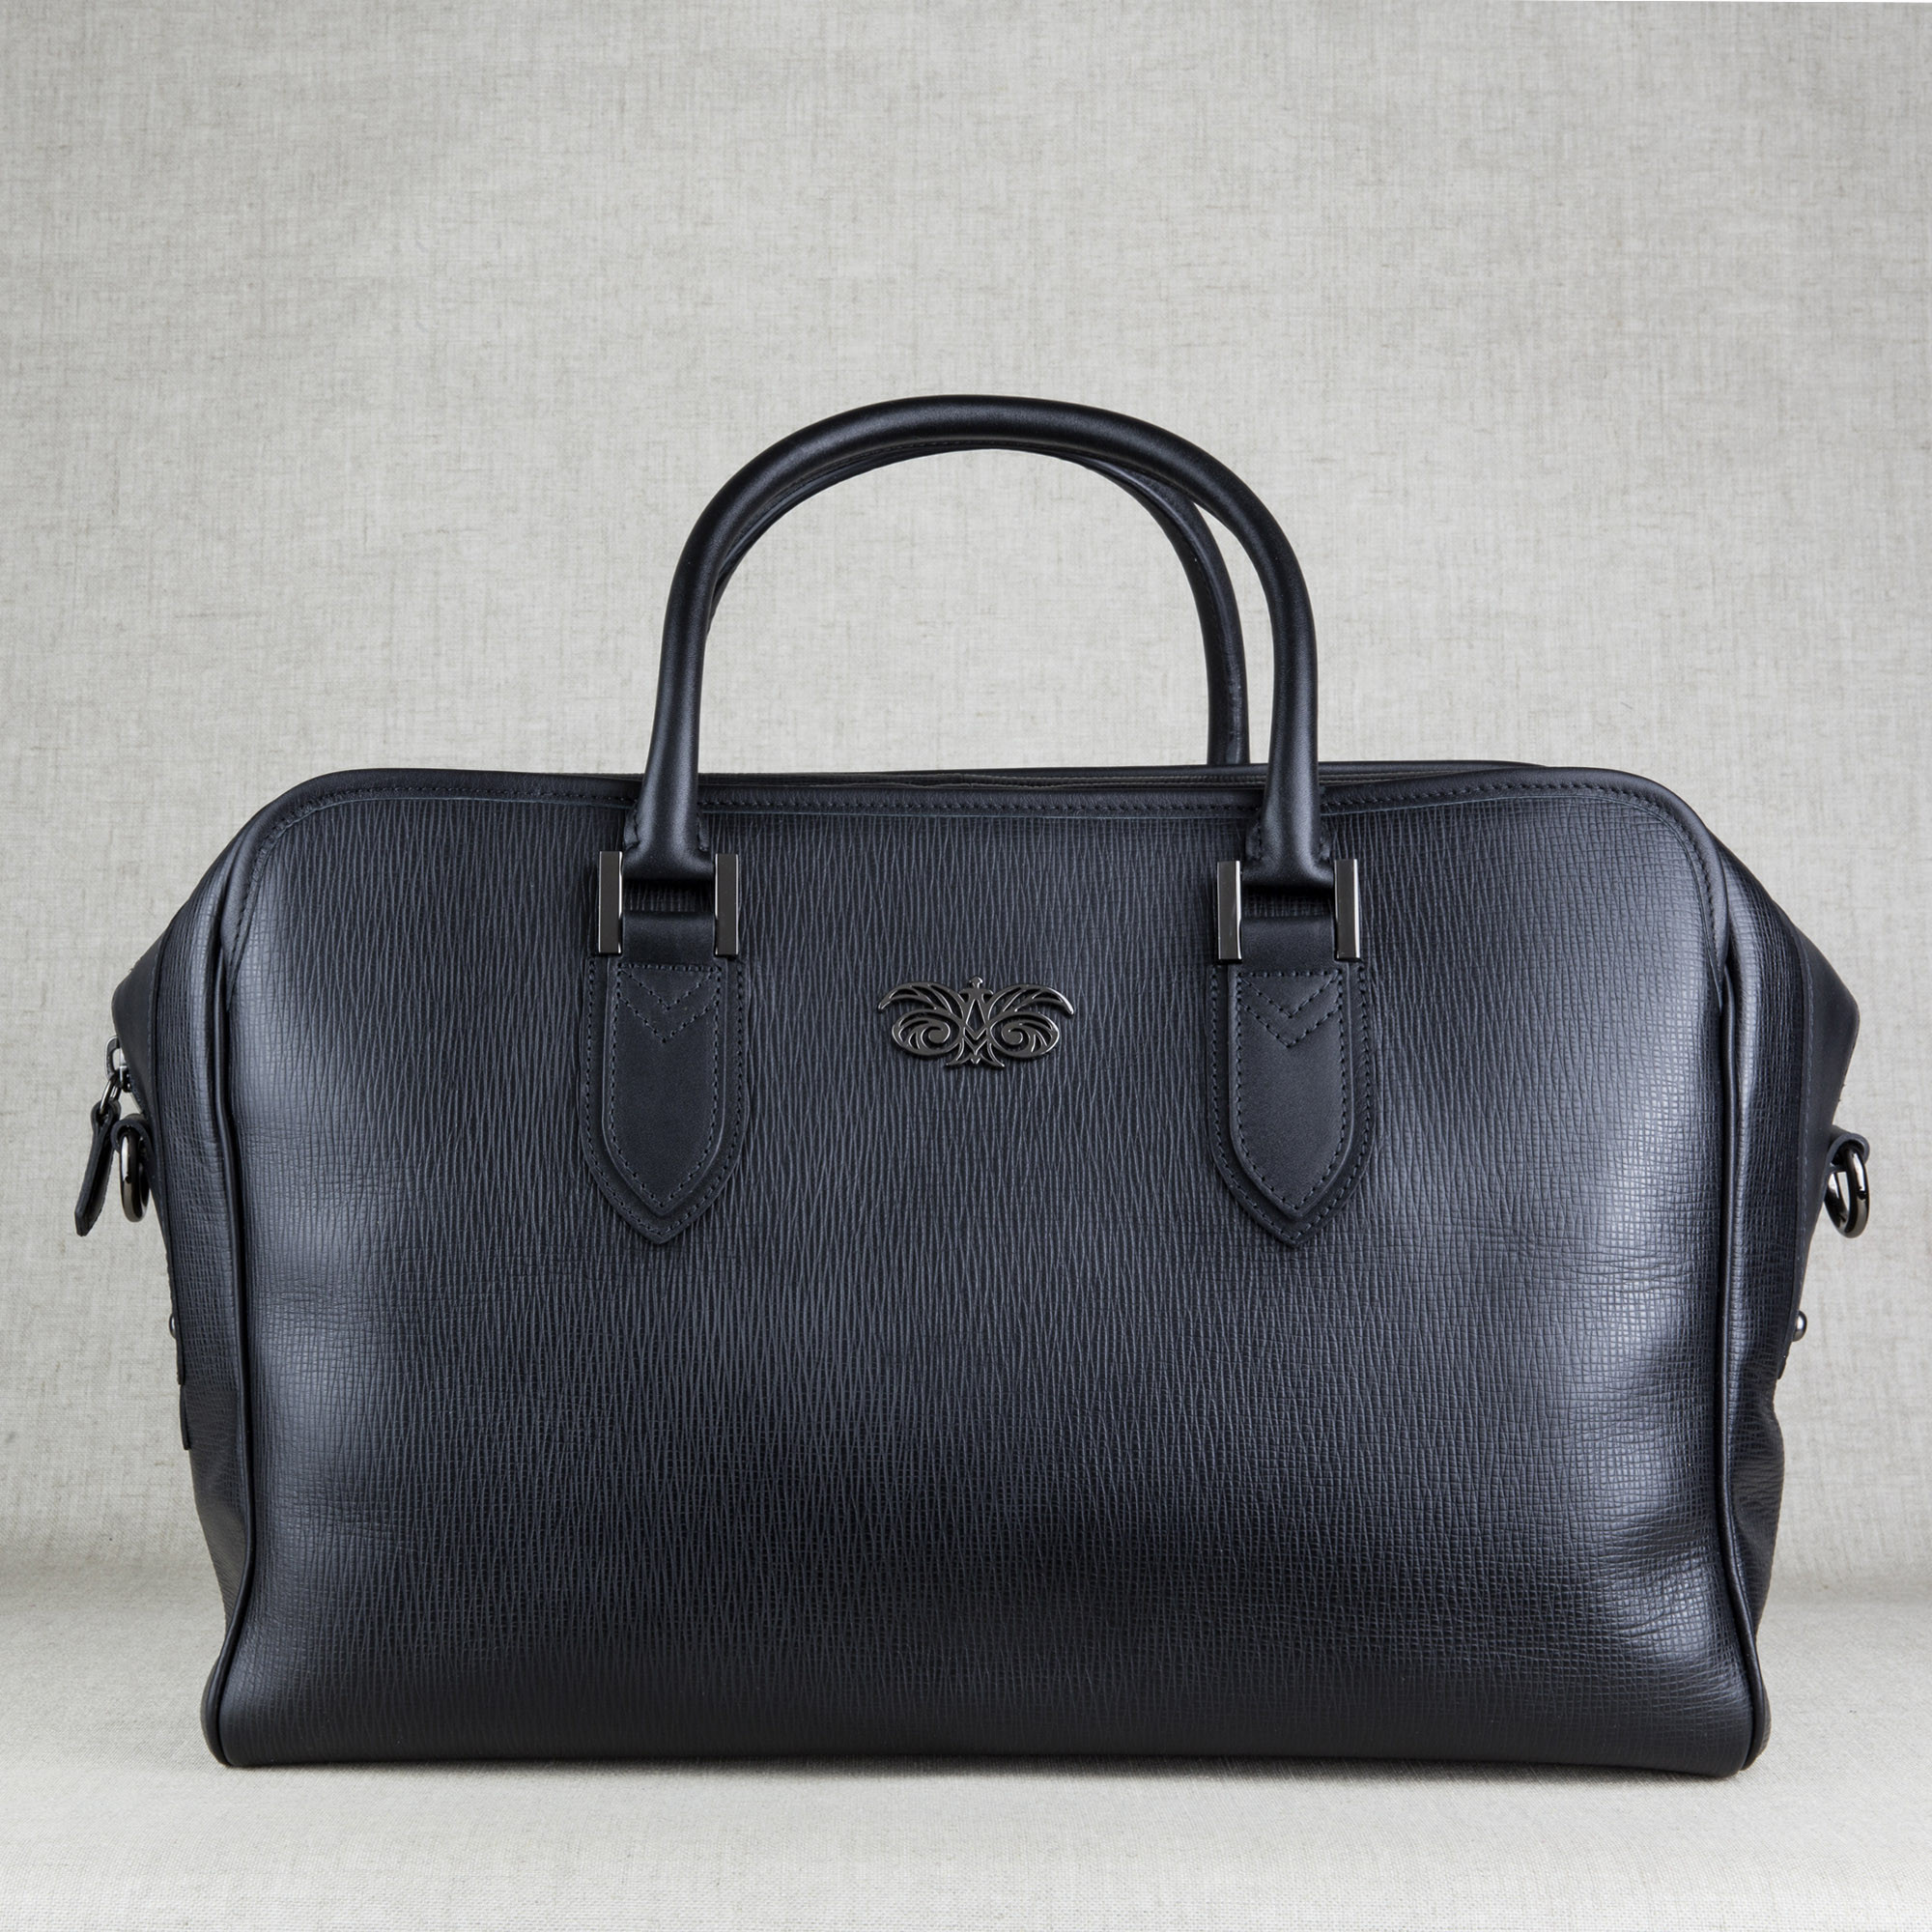 48h handbag for men in grained calf leather black color - front view - linen background